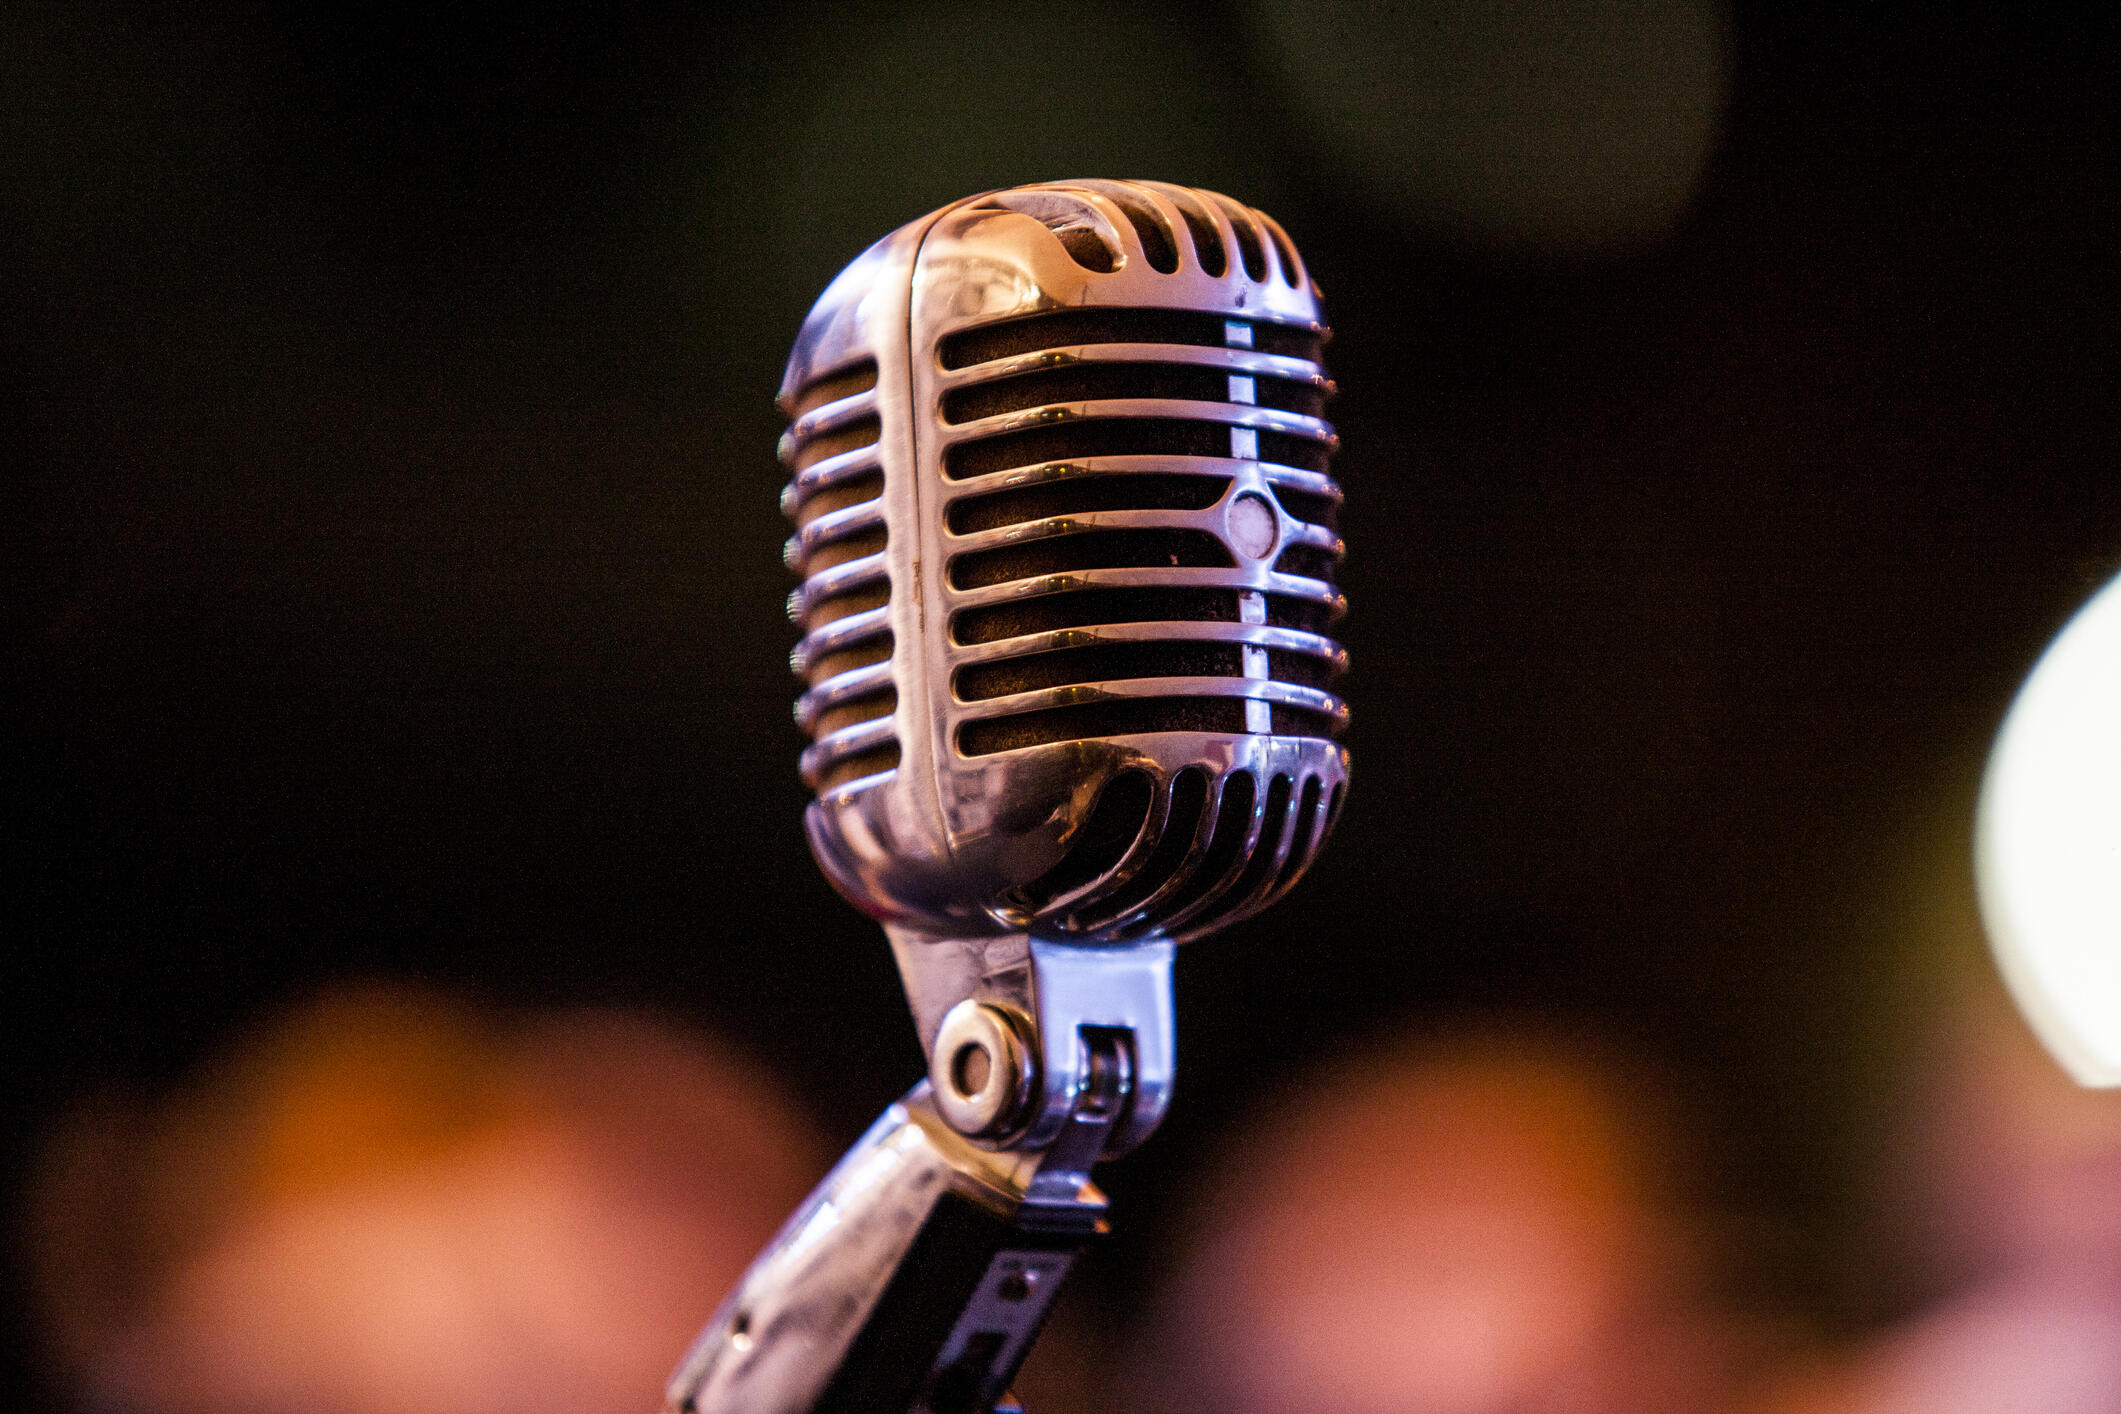 Atmospheric color photo of a vintage microphone